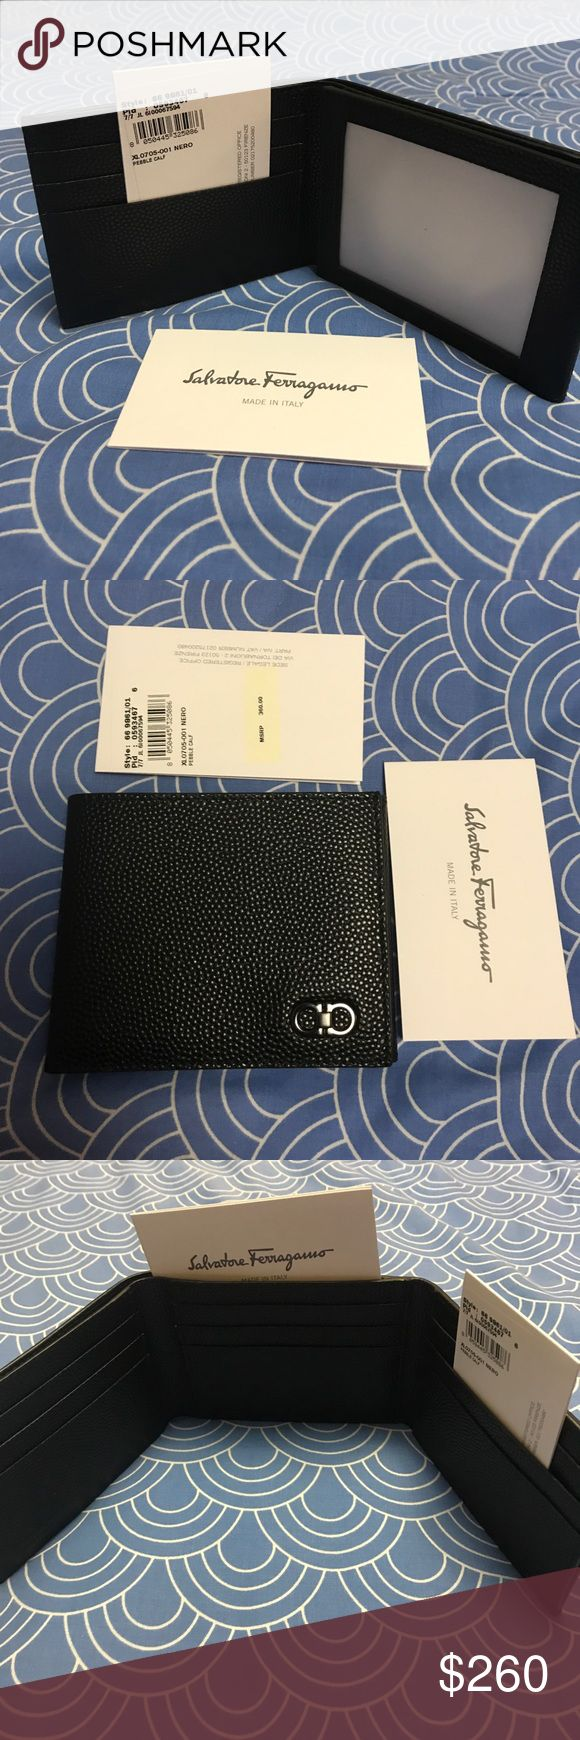 Ten Forty One .Mini Chicco'Tri Fold Wallet. Richly pebbled leather and a polished-metal double Gancio define a handsome wallet structured with an easy-access ID window for modern convenience. Interior ID window; currency and slip pockets; nine card slots. Lined. Leather.Black By Salvatore Ferragamo; made in Italy.                                         Price Negotiable.Not Lowballs please. Salvatore Ferragamo Bags Wallets